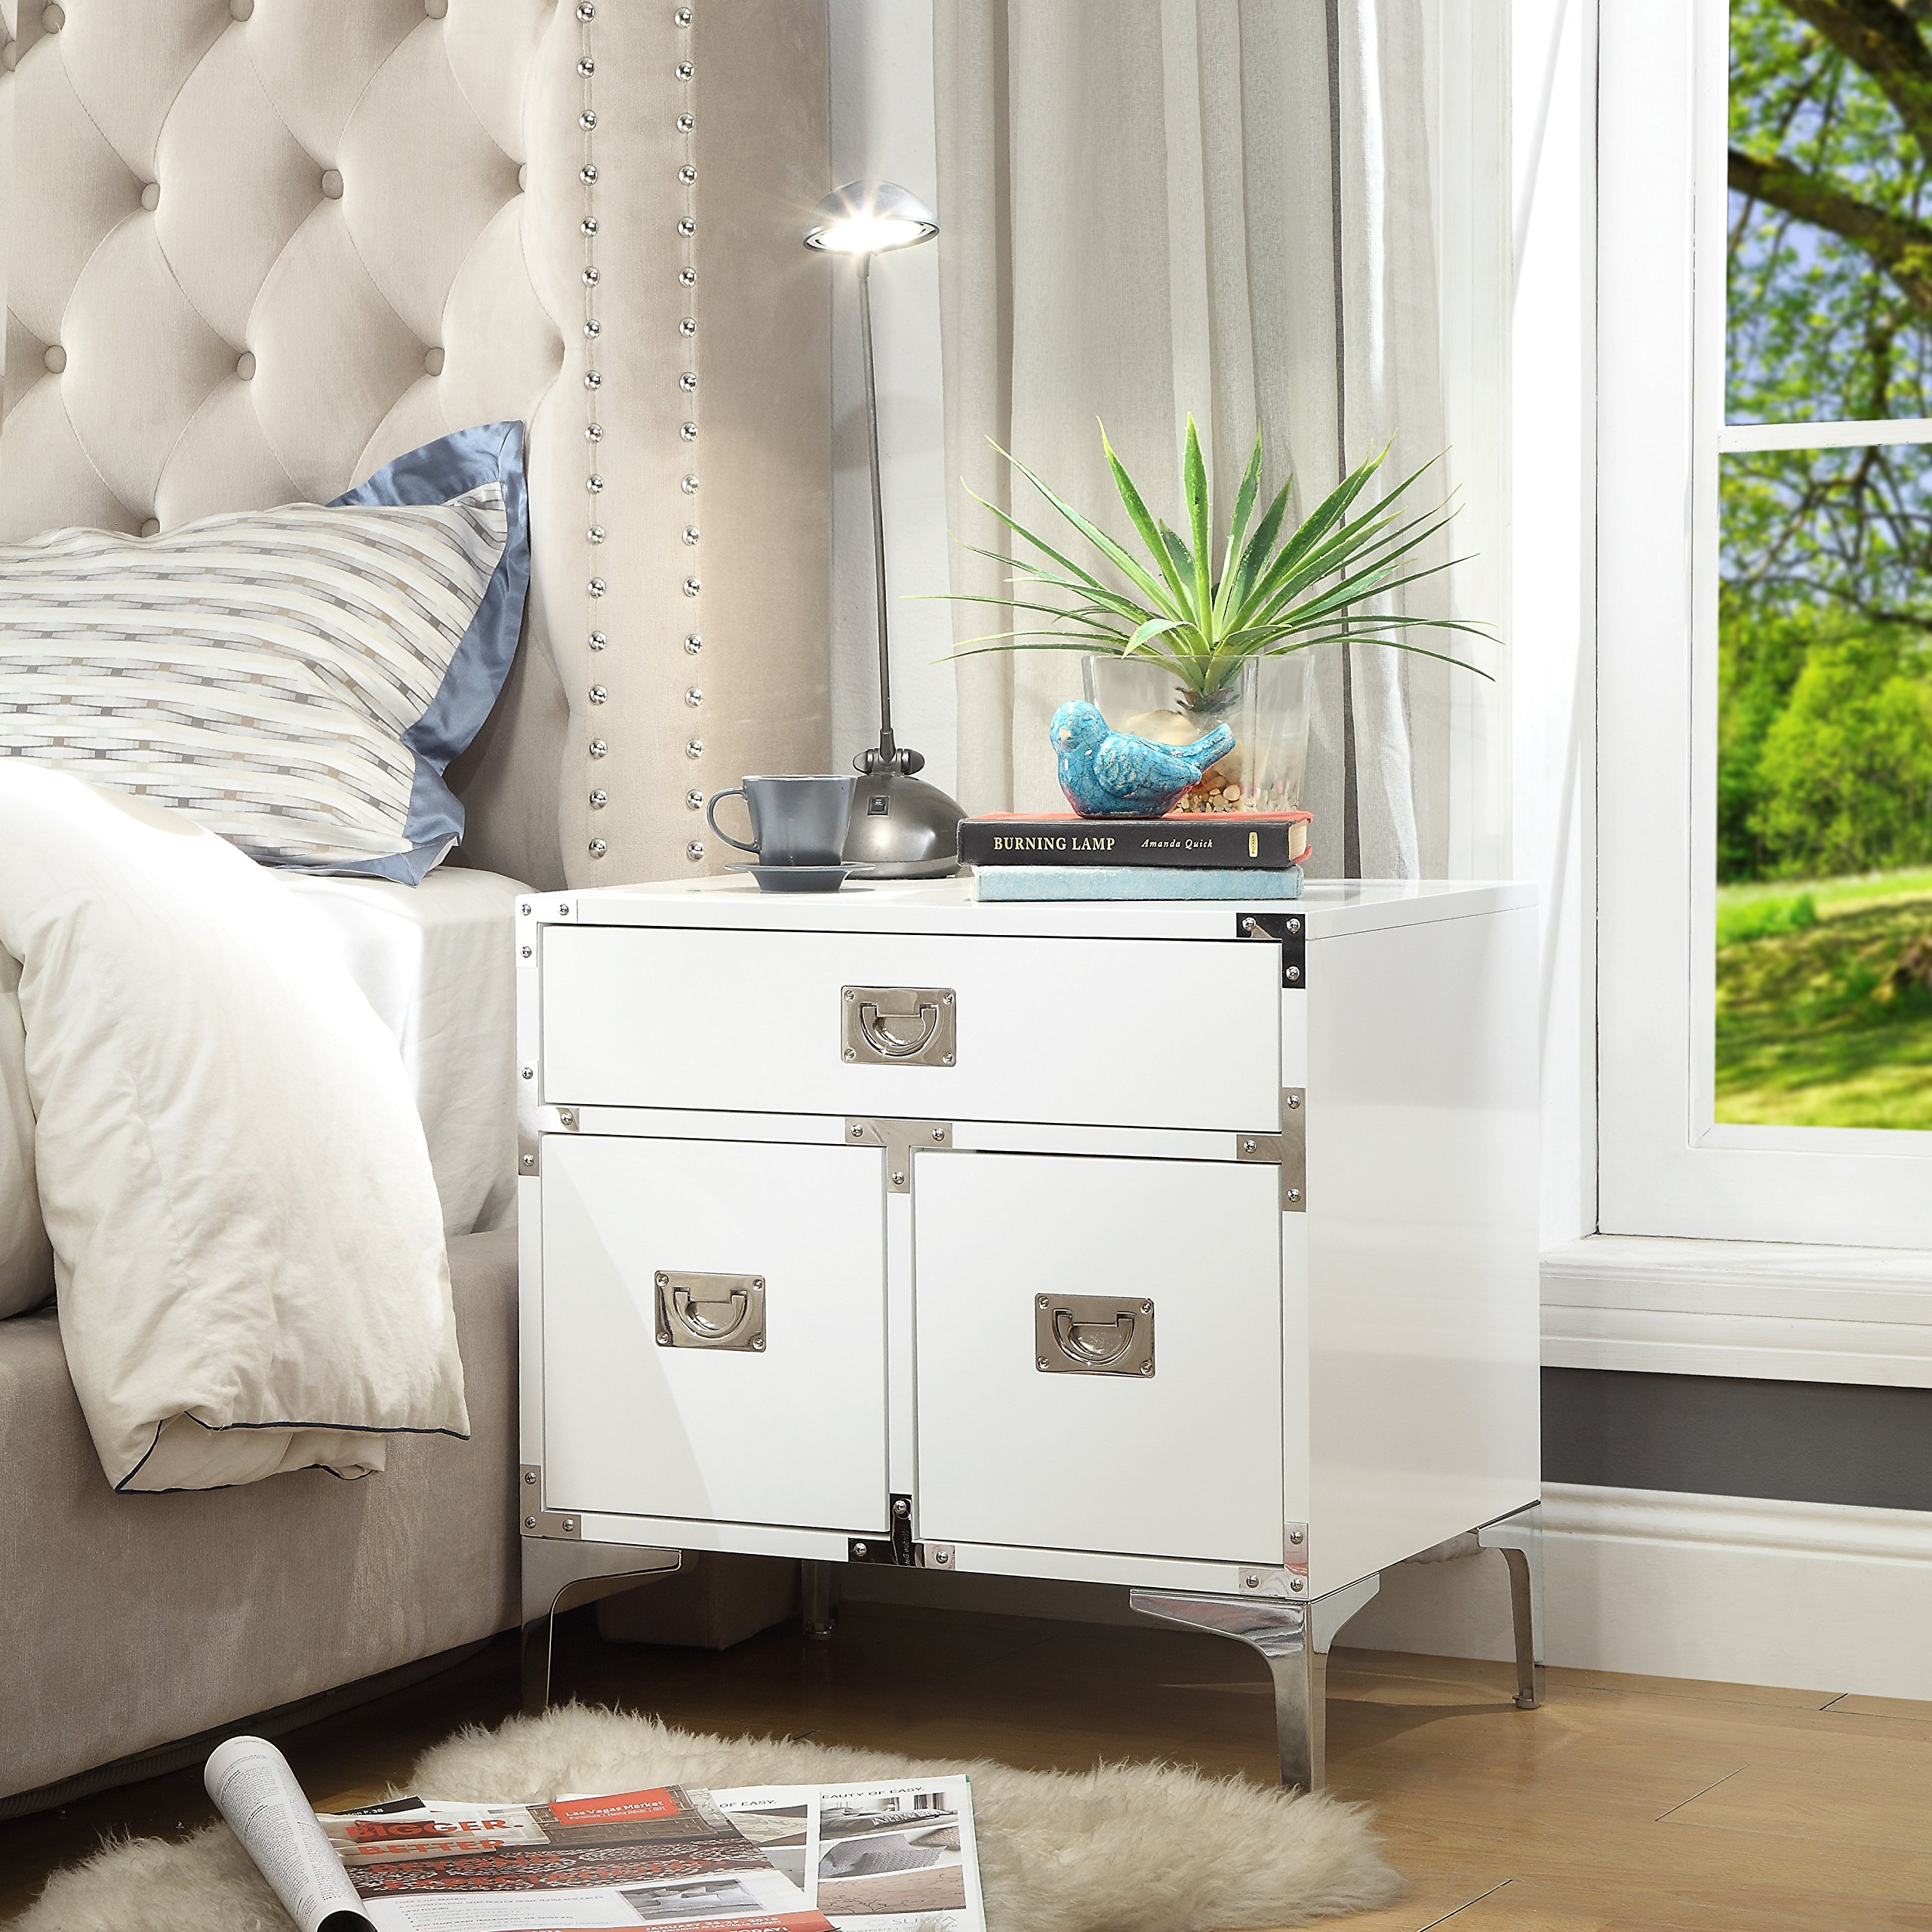 Inspired Home Marco Executive Style Lacquer-Finish Side Table / Accent Table / Nightstand with Decorative Corner Brackets and Chrome Leg, White